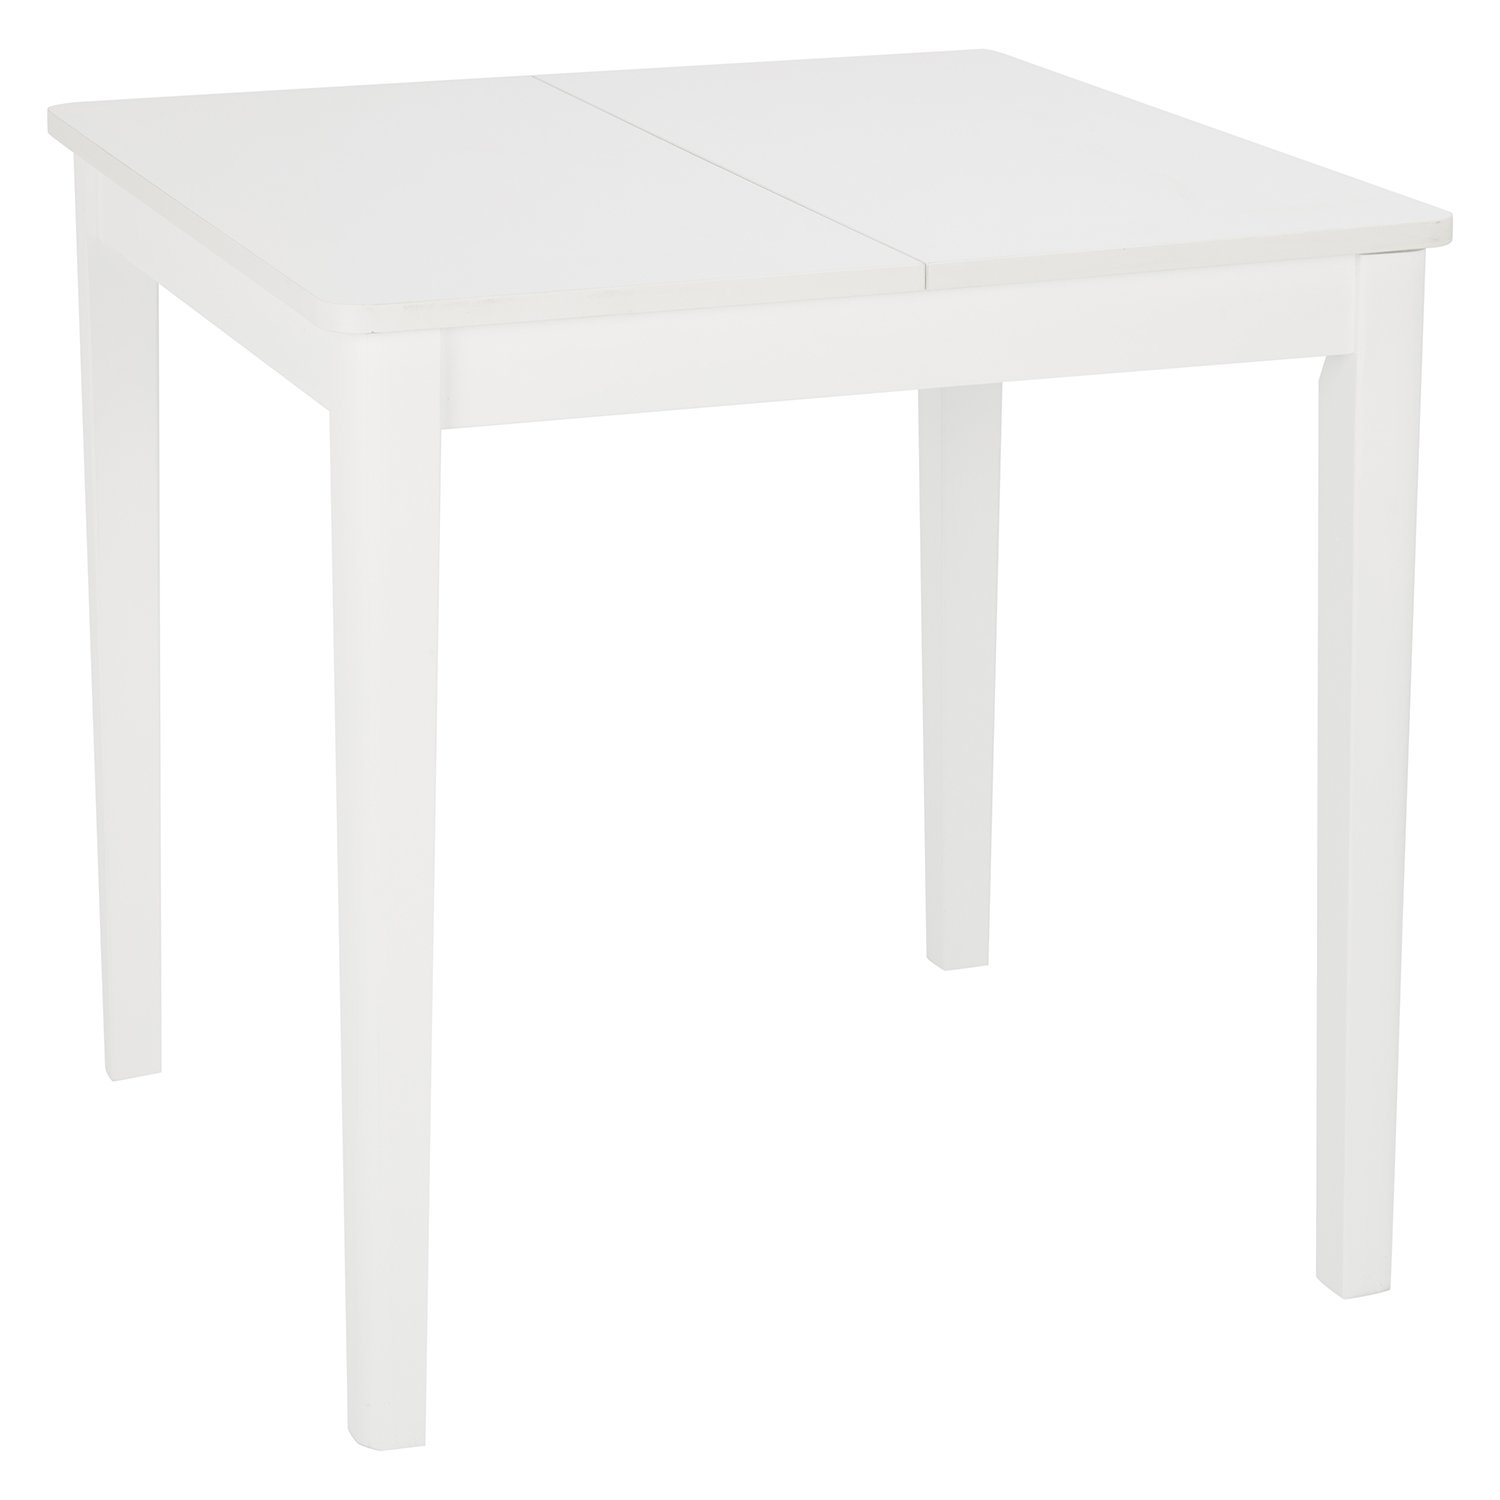 Paul extendable table - small – white - Laura James